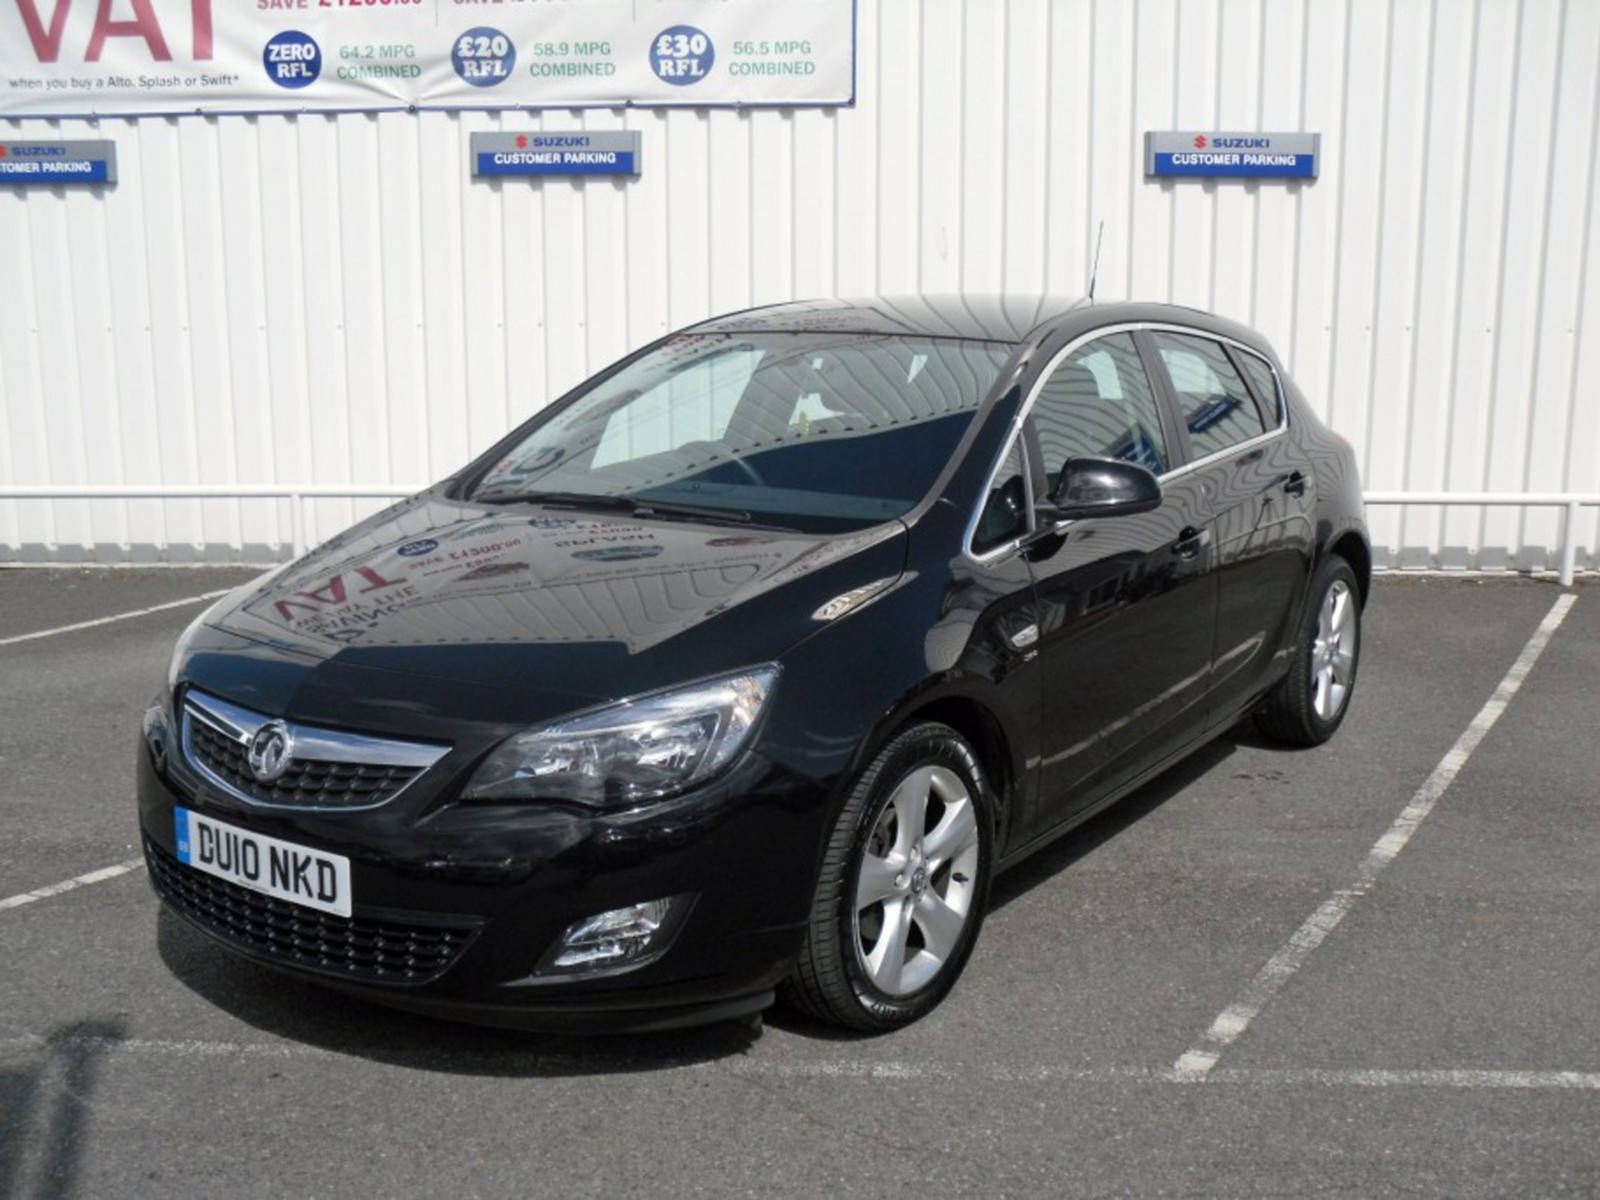 2010 Vauxhall Astra SRi 5 Door